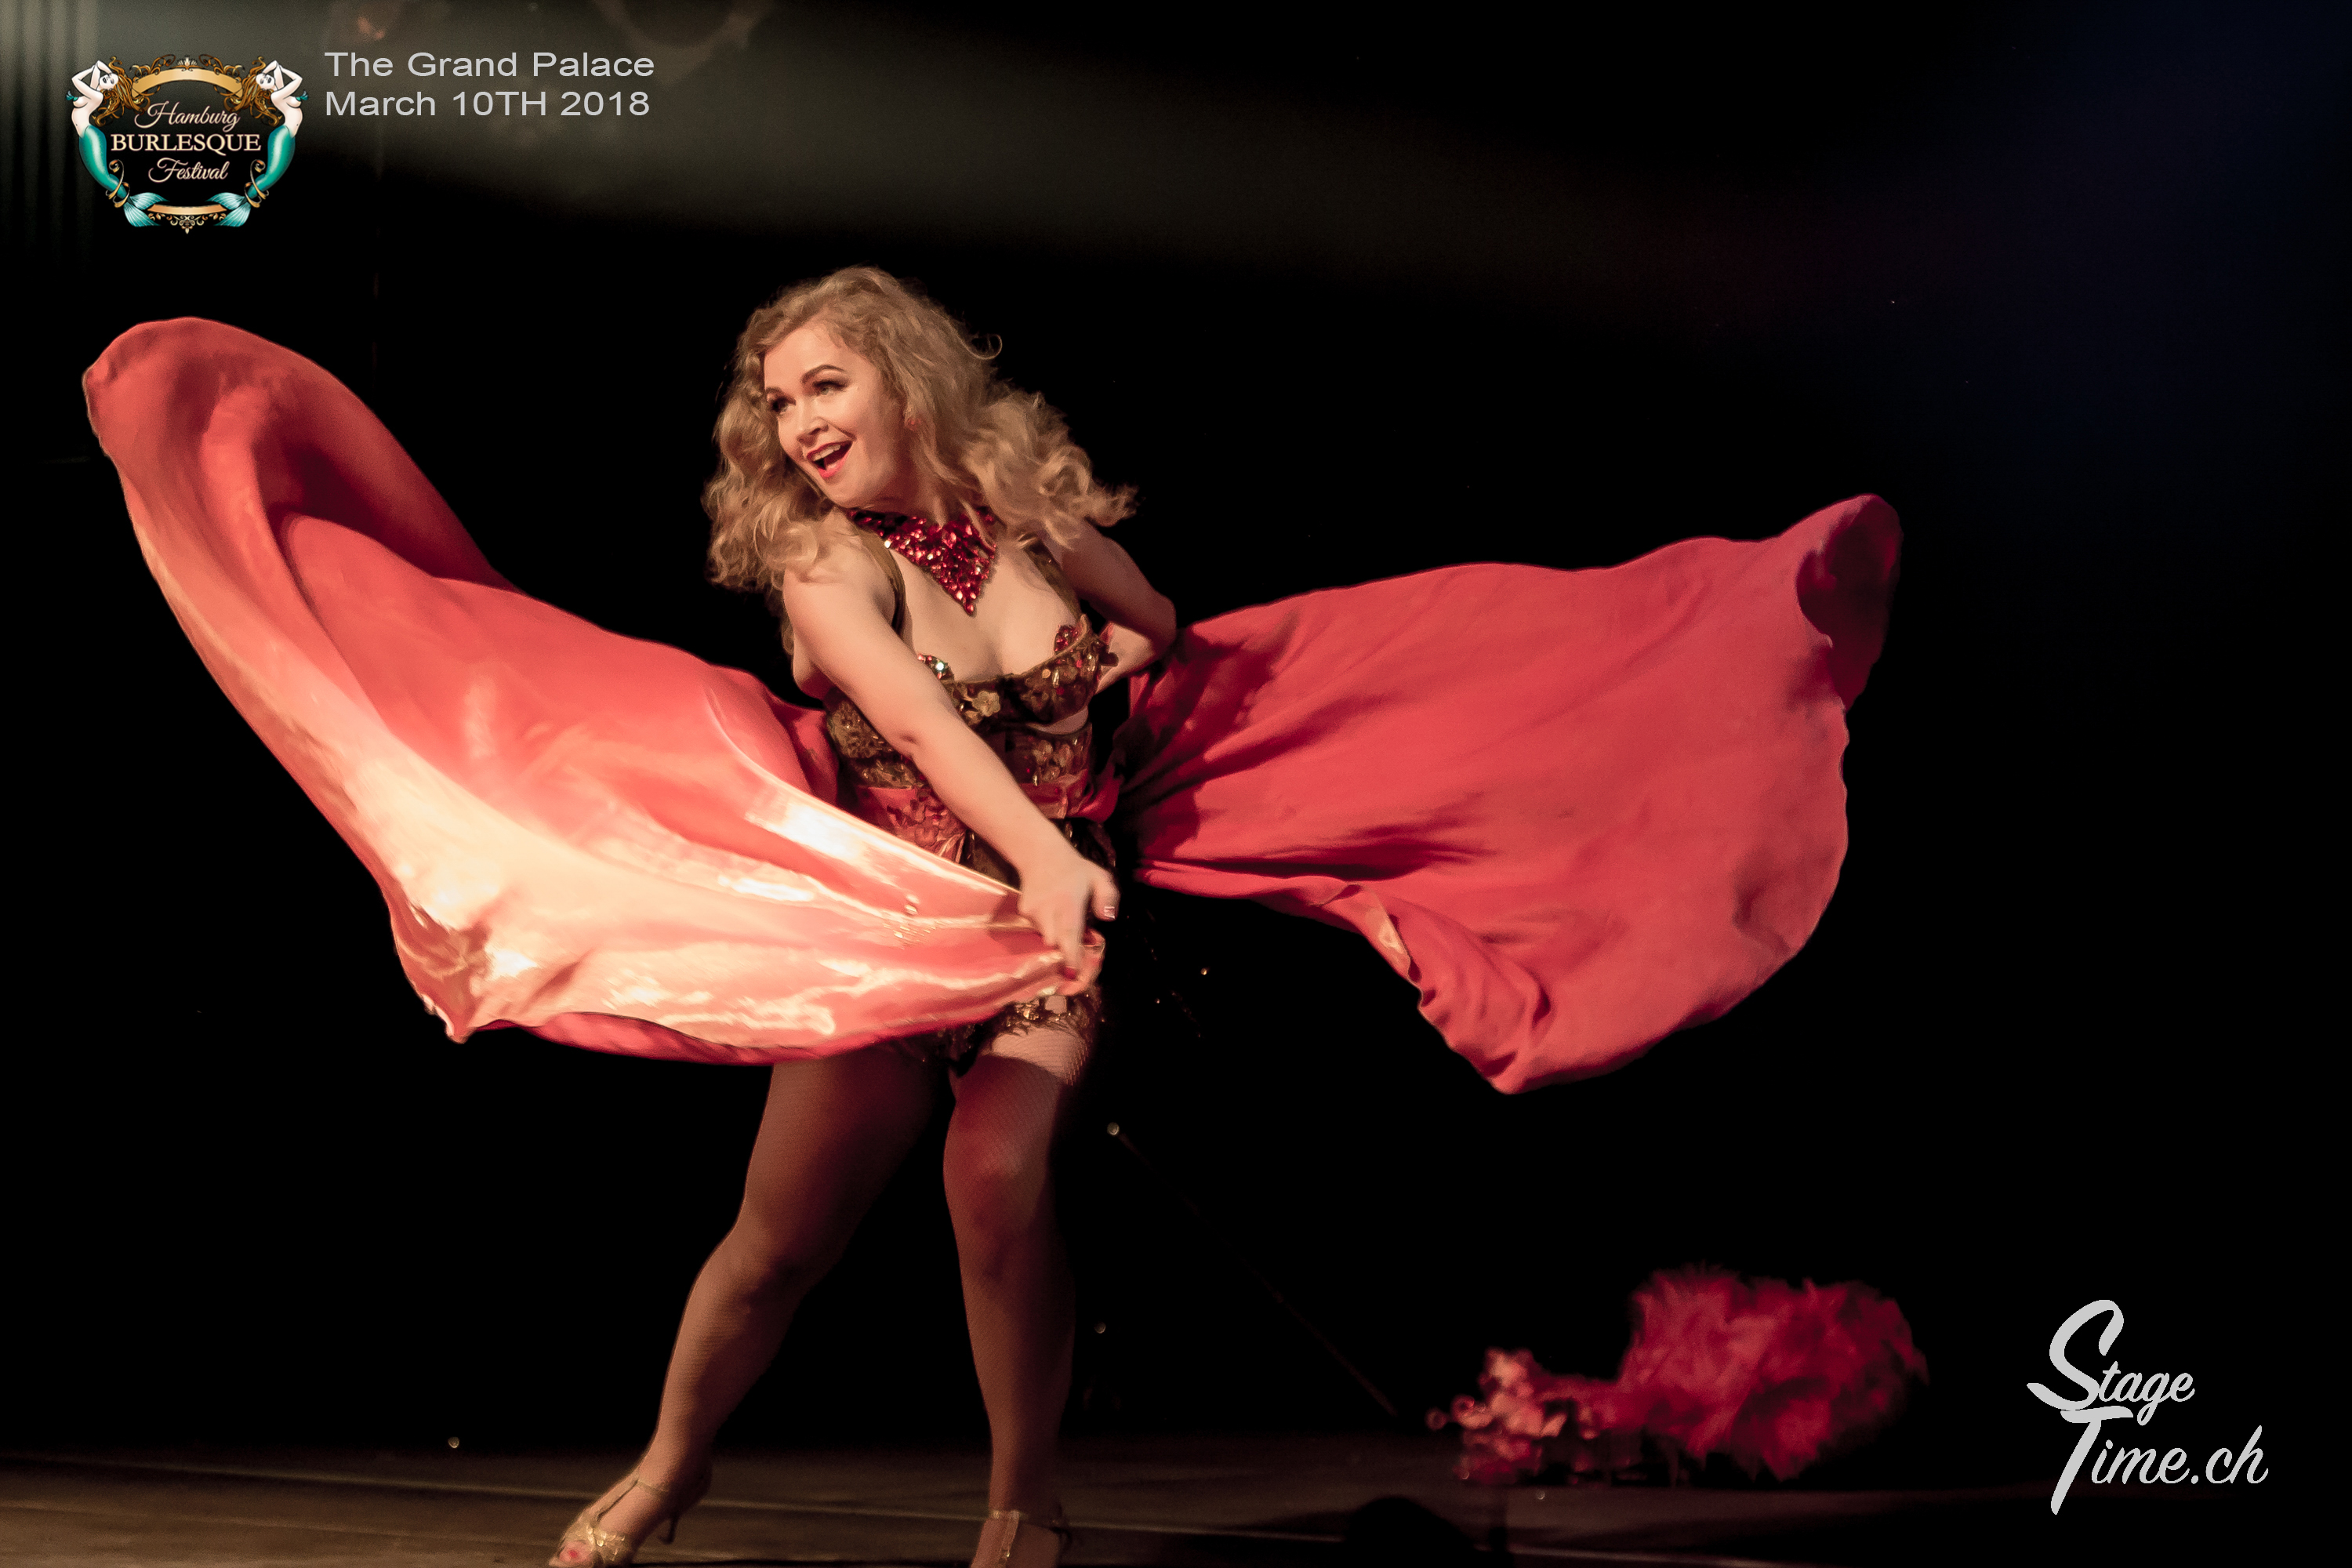 Hamburg_Burlesque_Festival_The_Grand_Palace__📷_Christoph_Gurtner_I_stagetime.ch-78